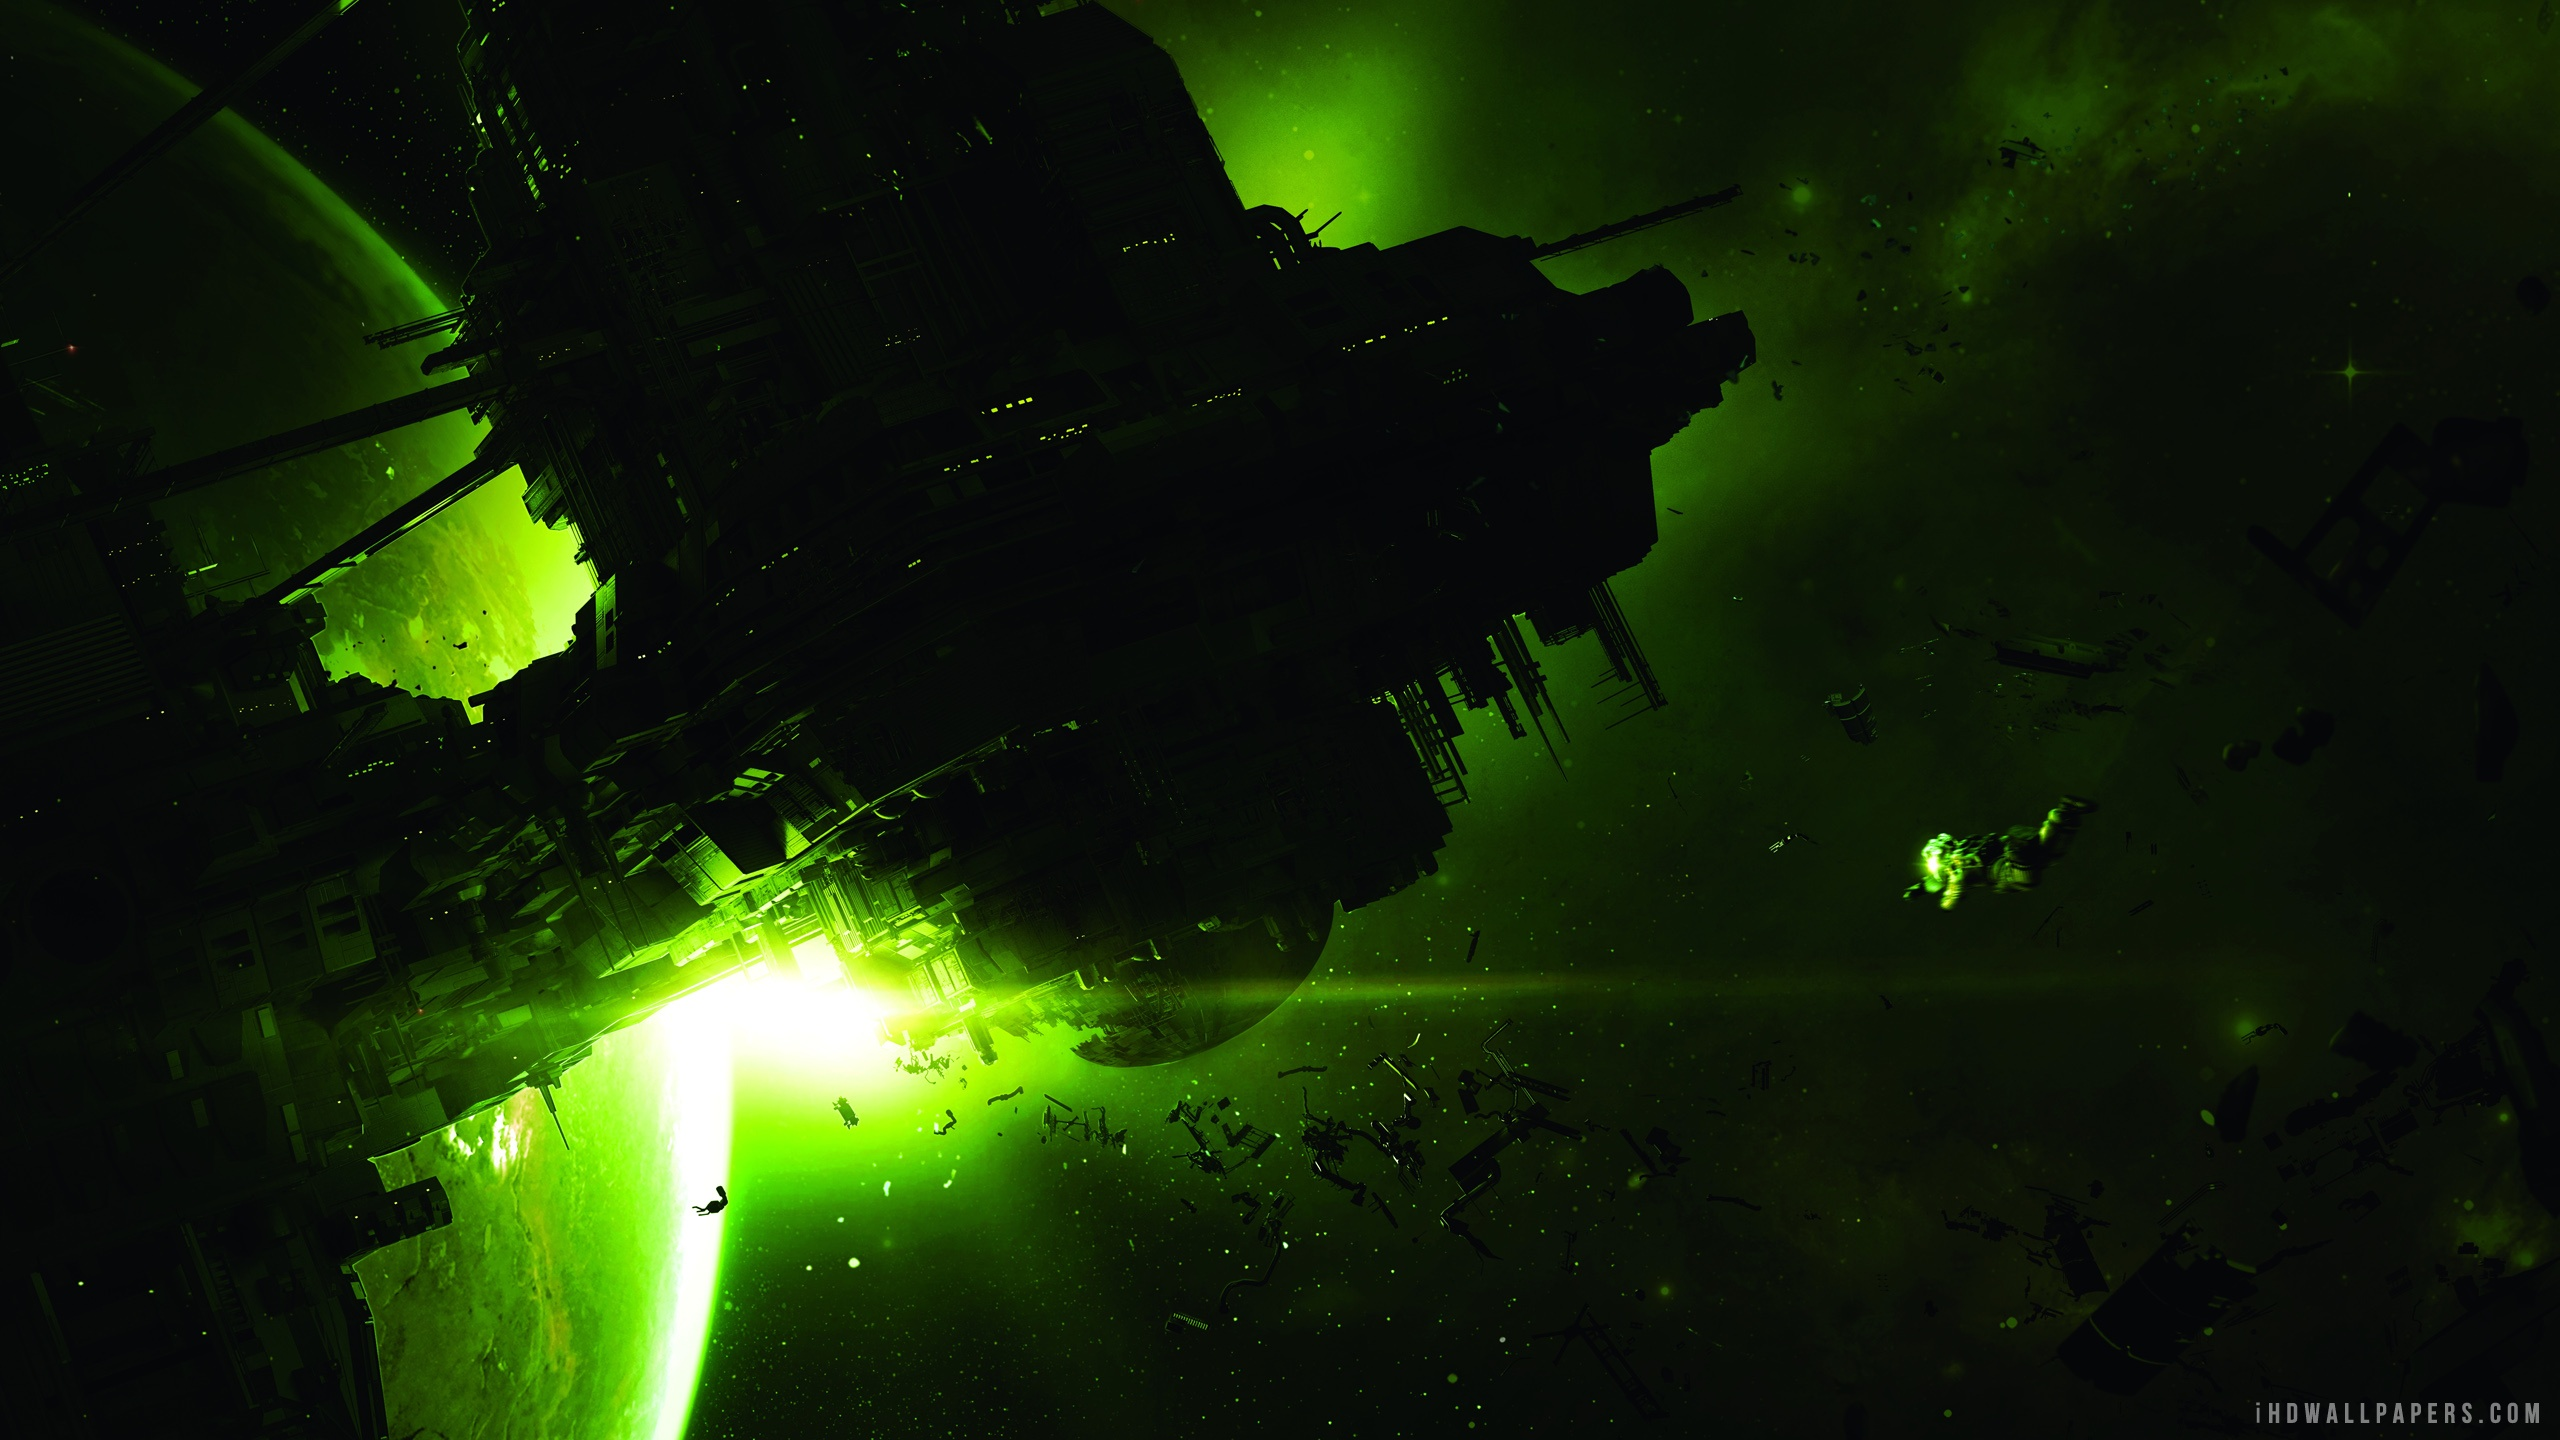 Alien Isolation Video Game wallpaper 2560x1440 2560x1440